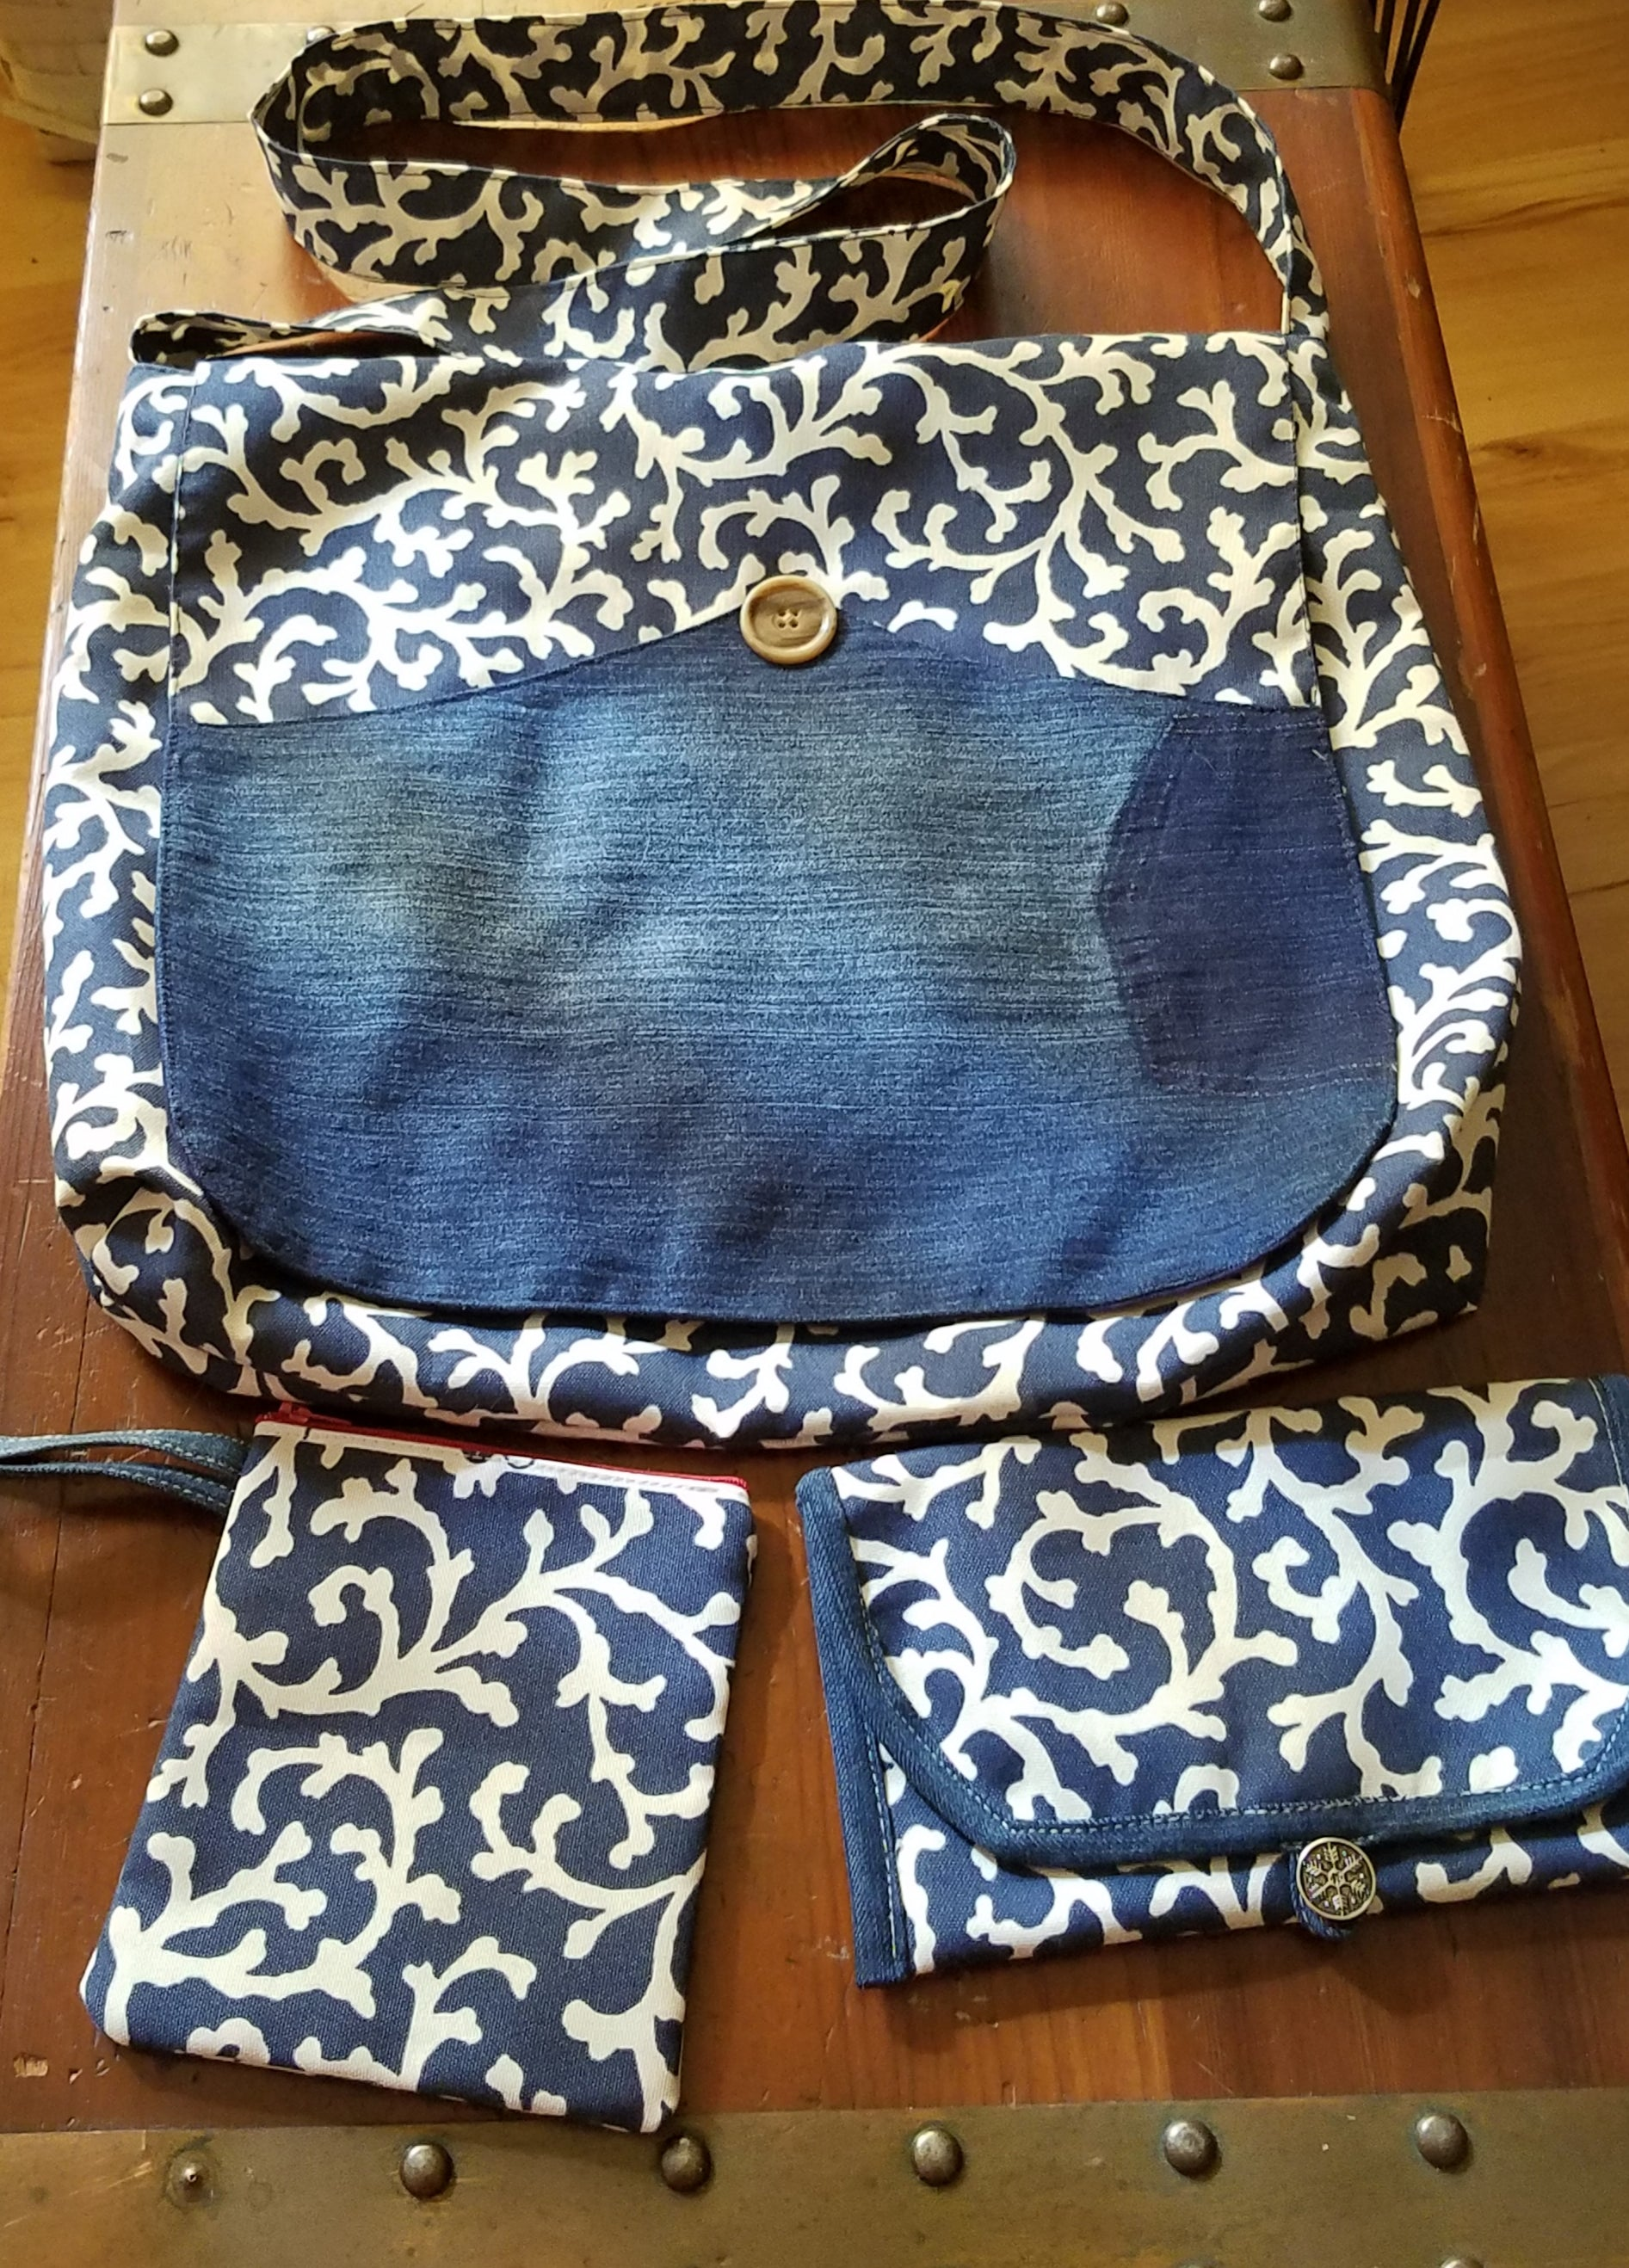 Recycled Jeans 3 Piece Hand Bag Set